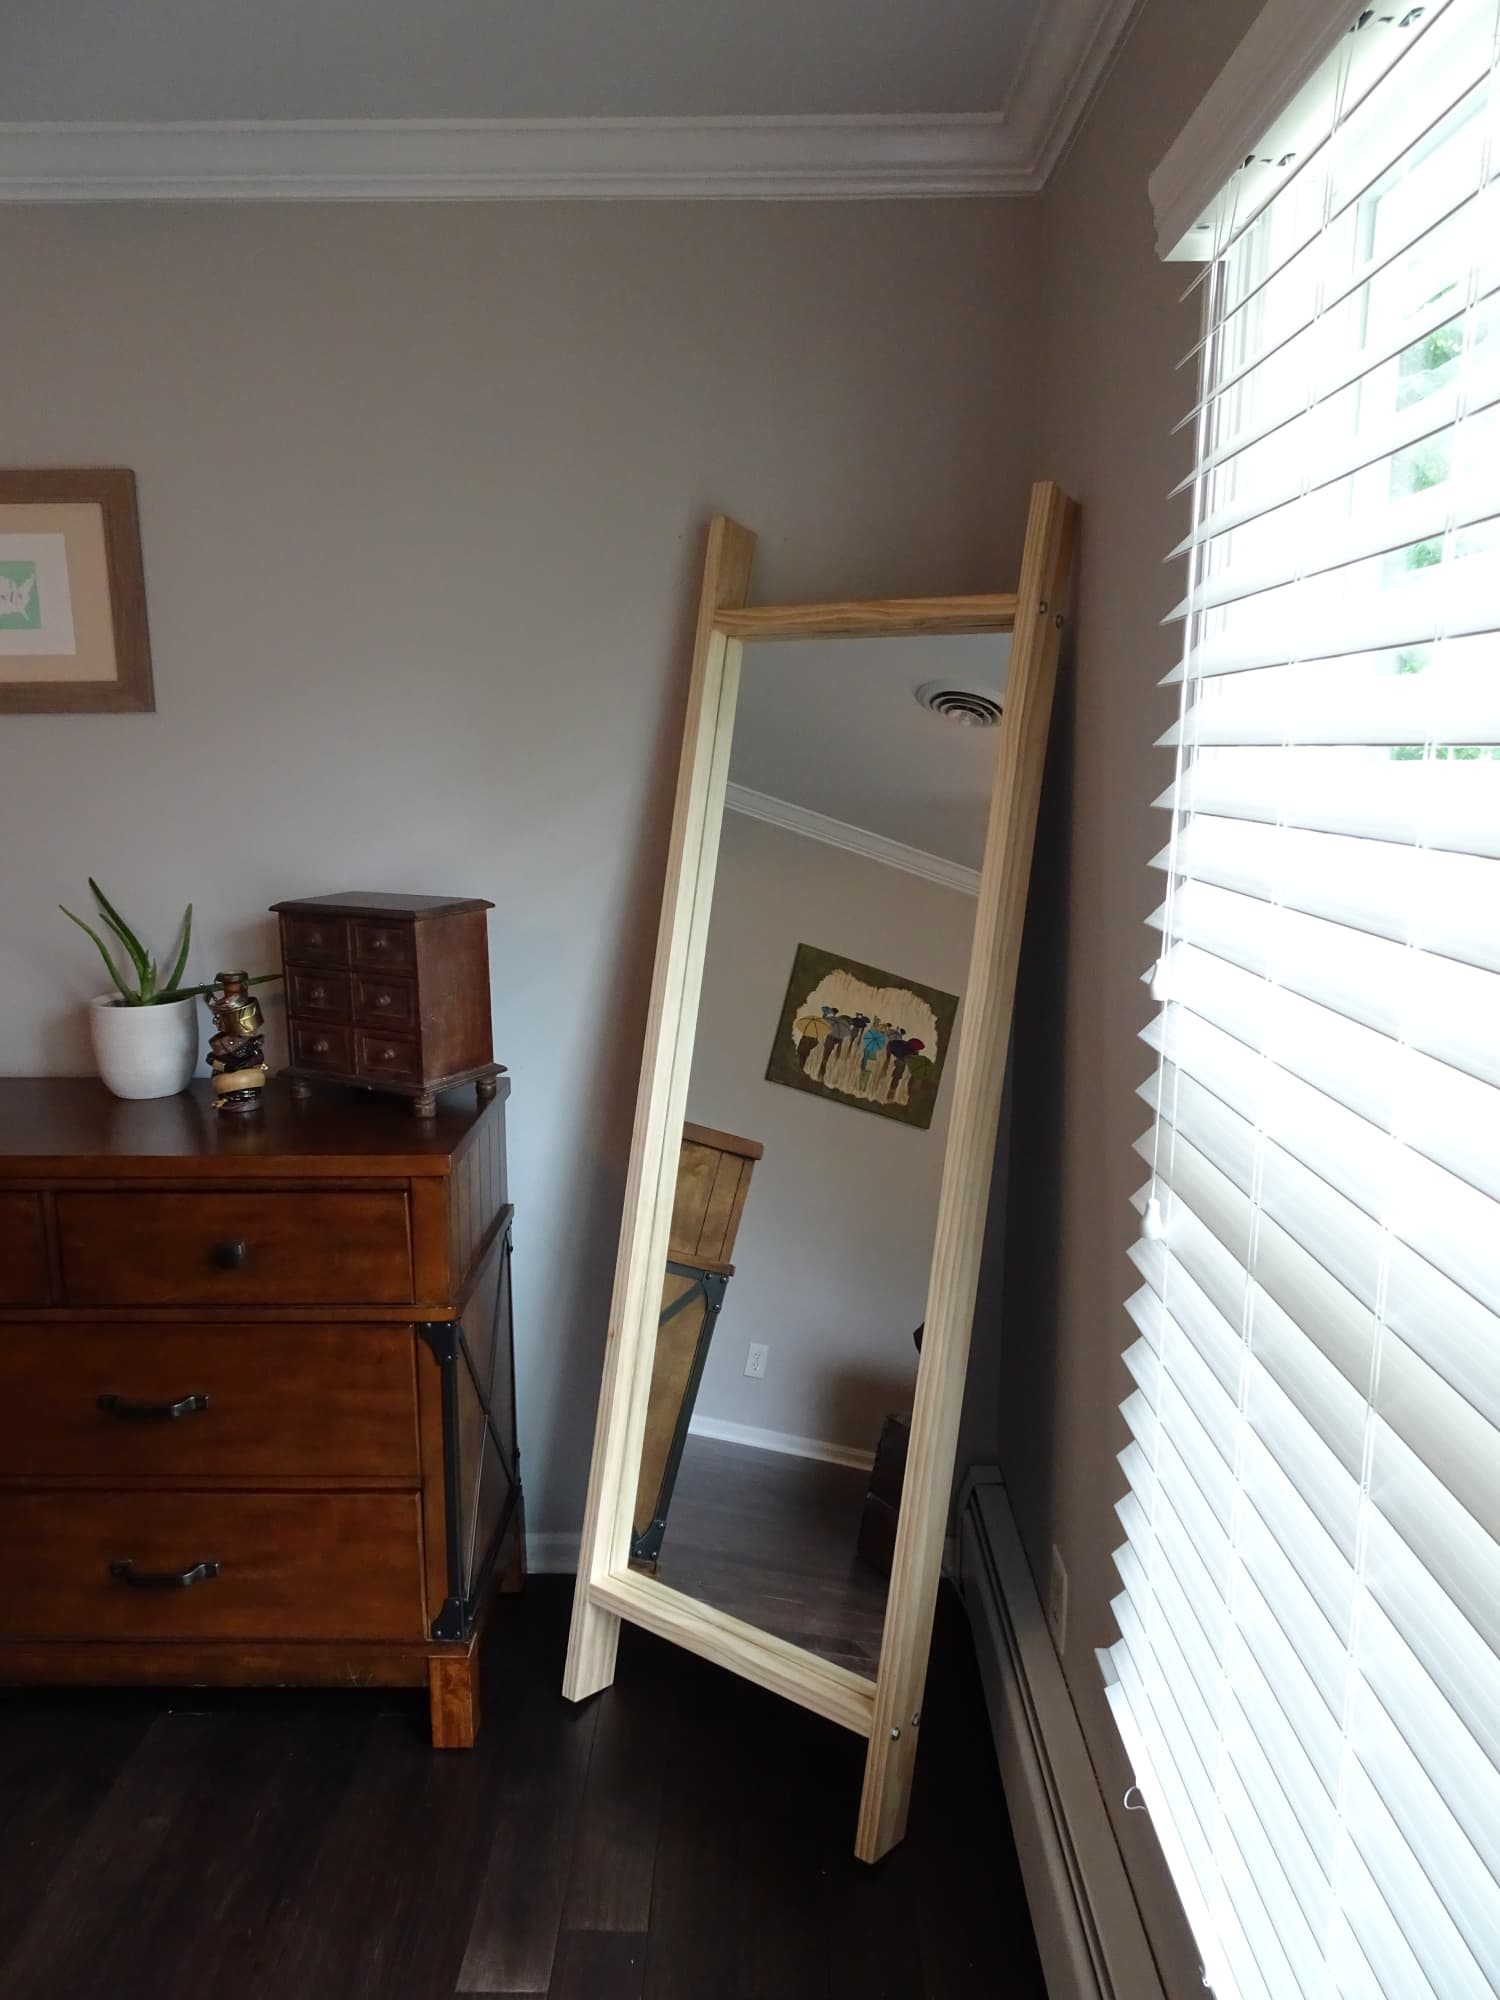 How To Make A Mirror Frame For A Floor Length Mirror Apartment